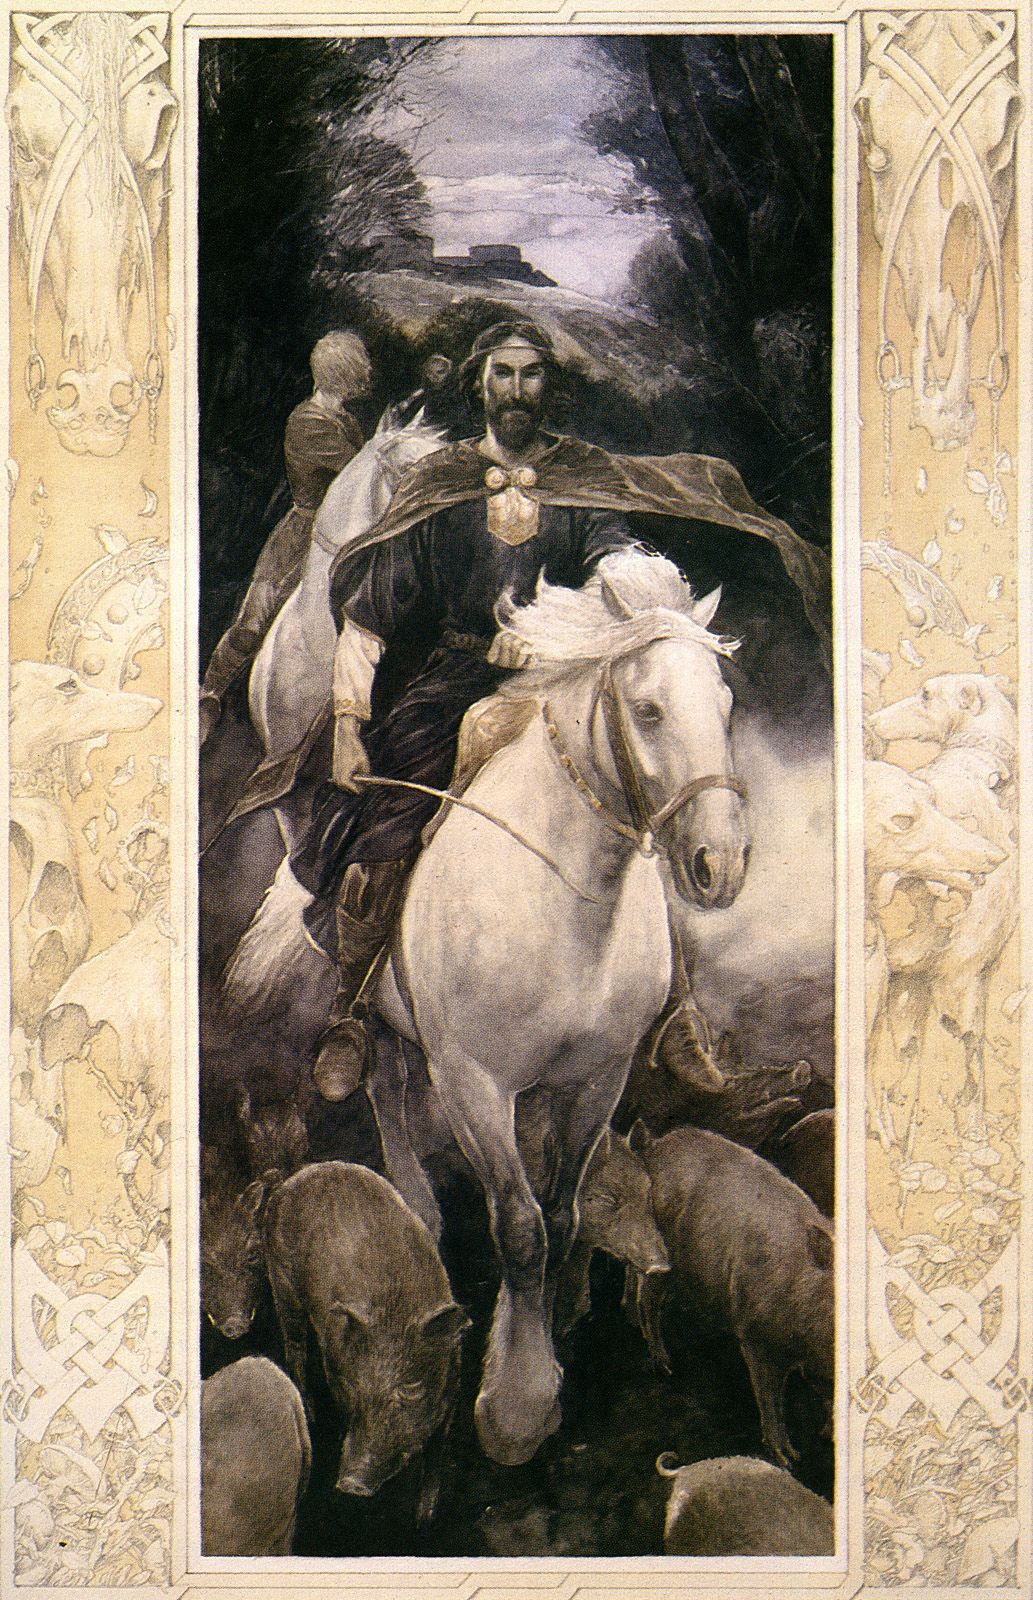 Alan Lee illustration from 'Math, son of Mathonwy', from 'The Mabinogion'